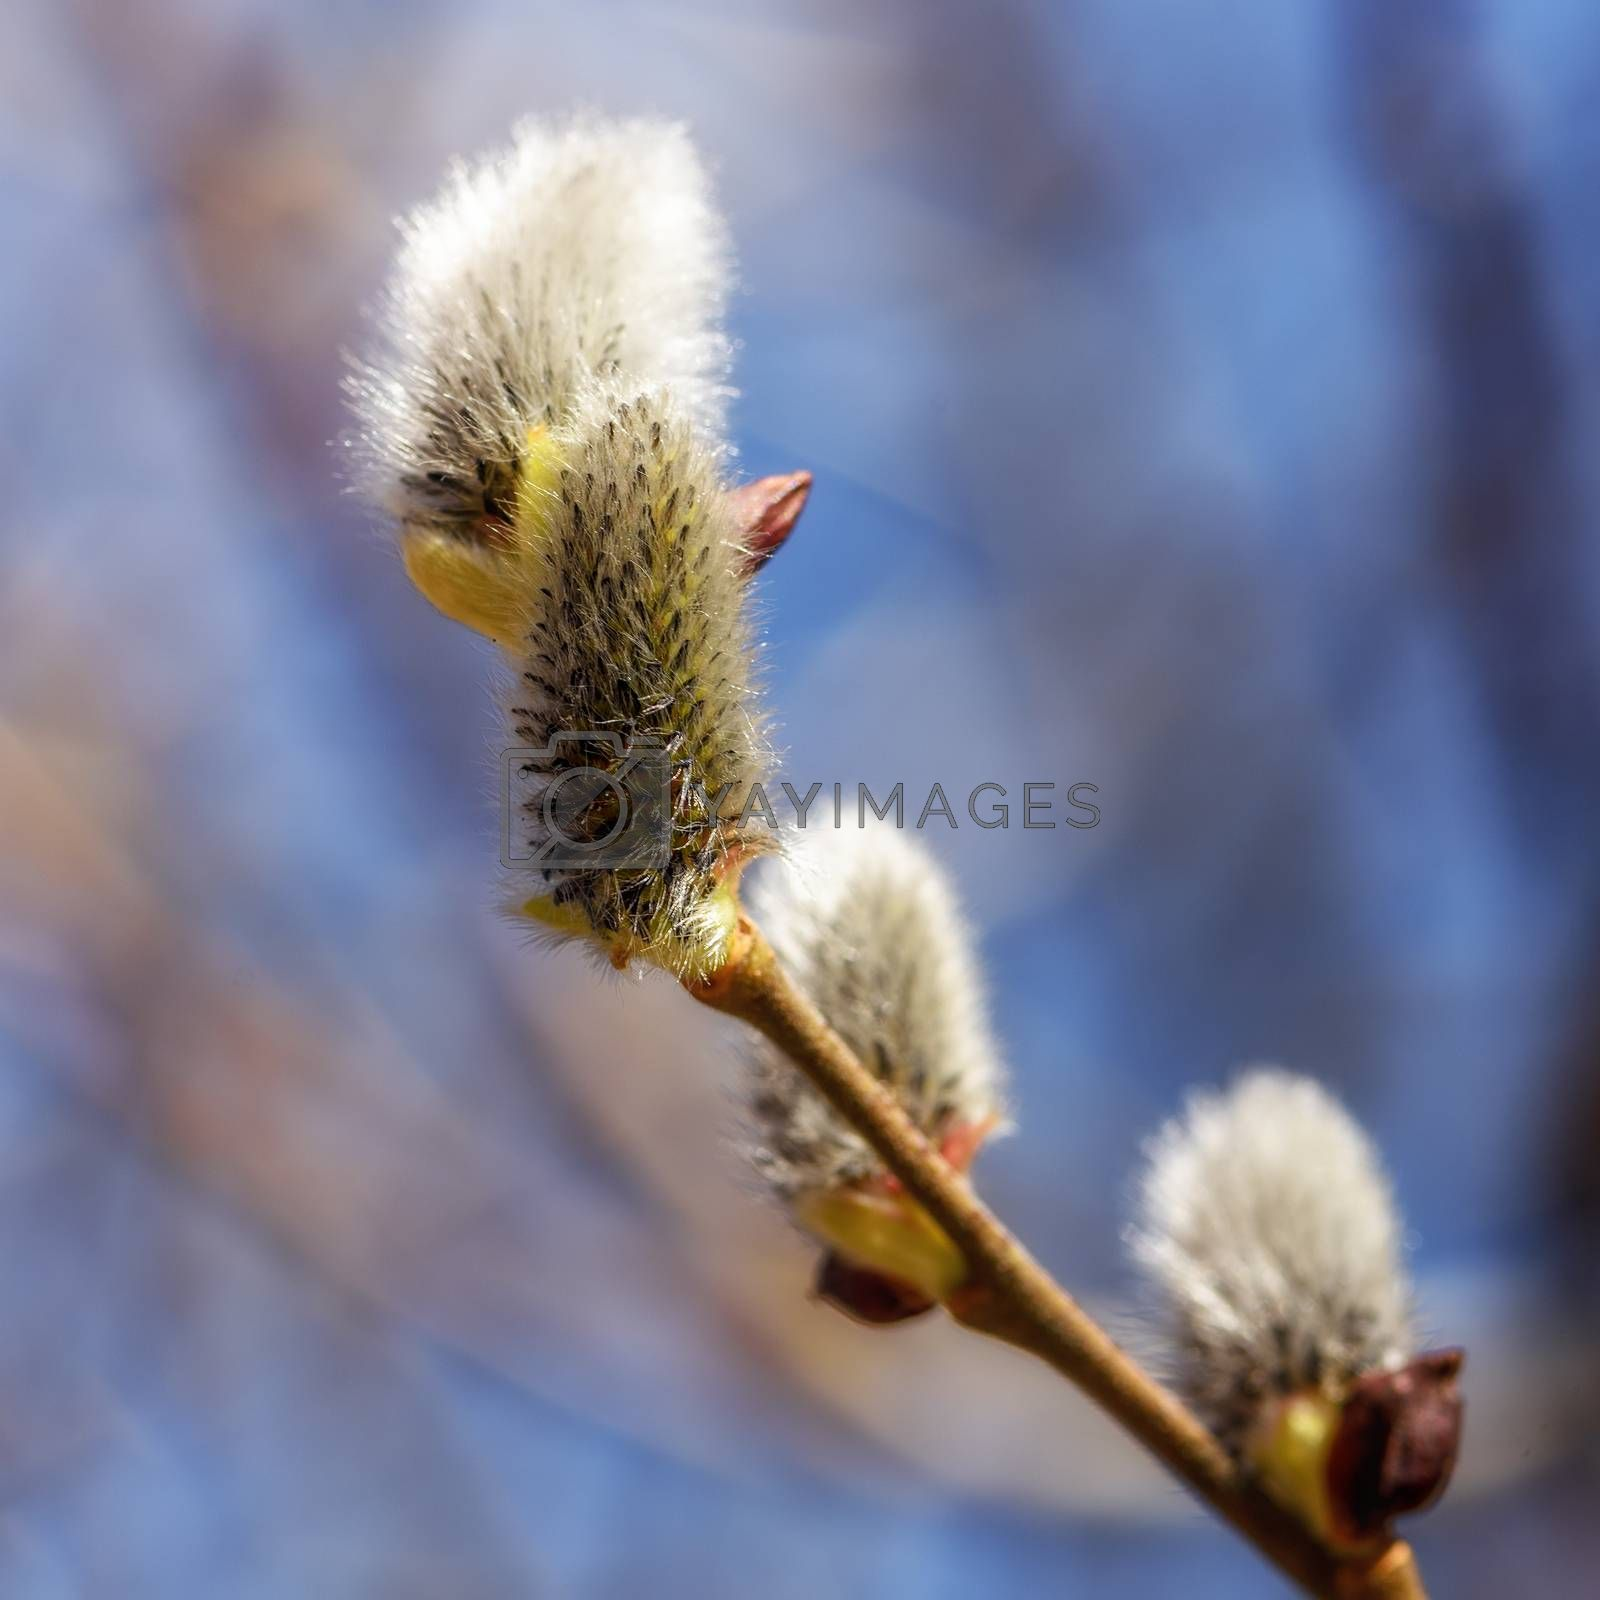 Flowering willow buds on a branch close up in early spring